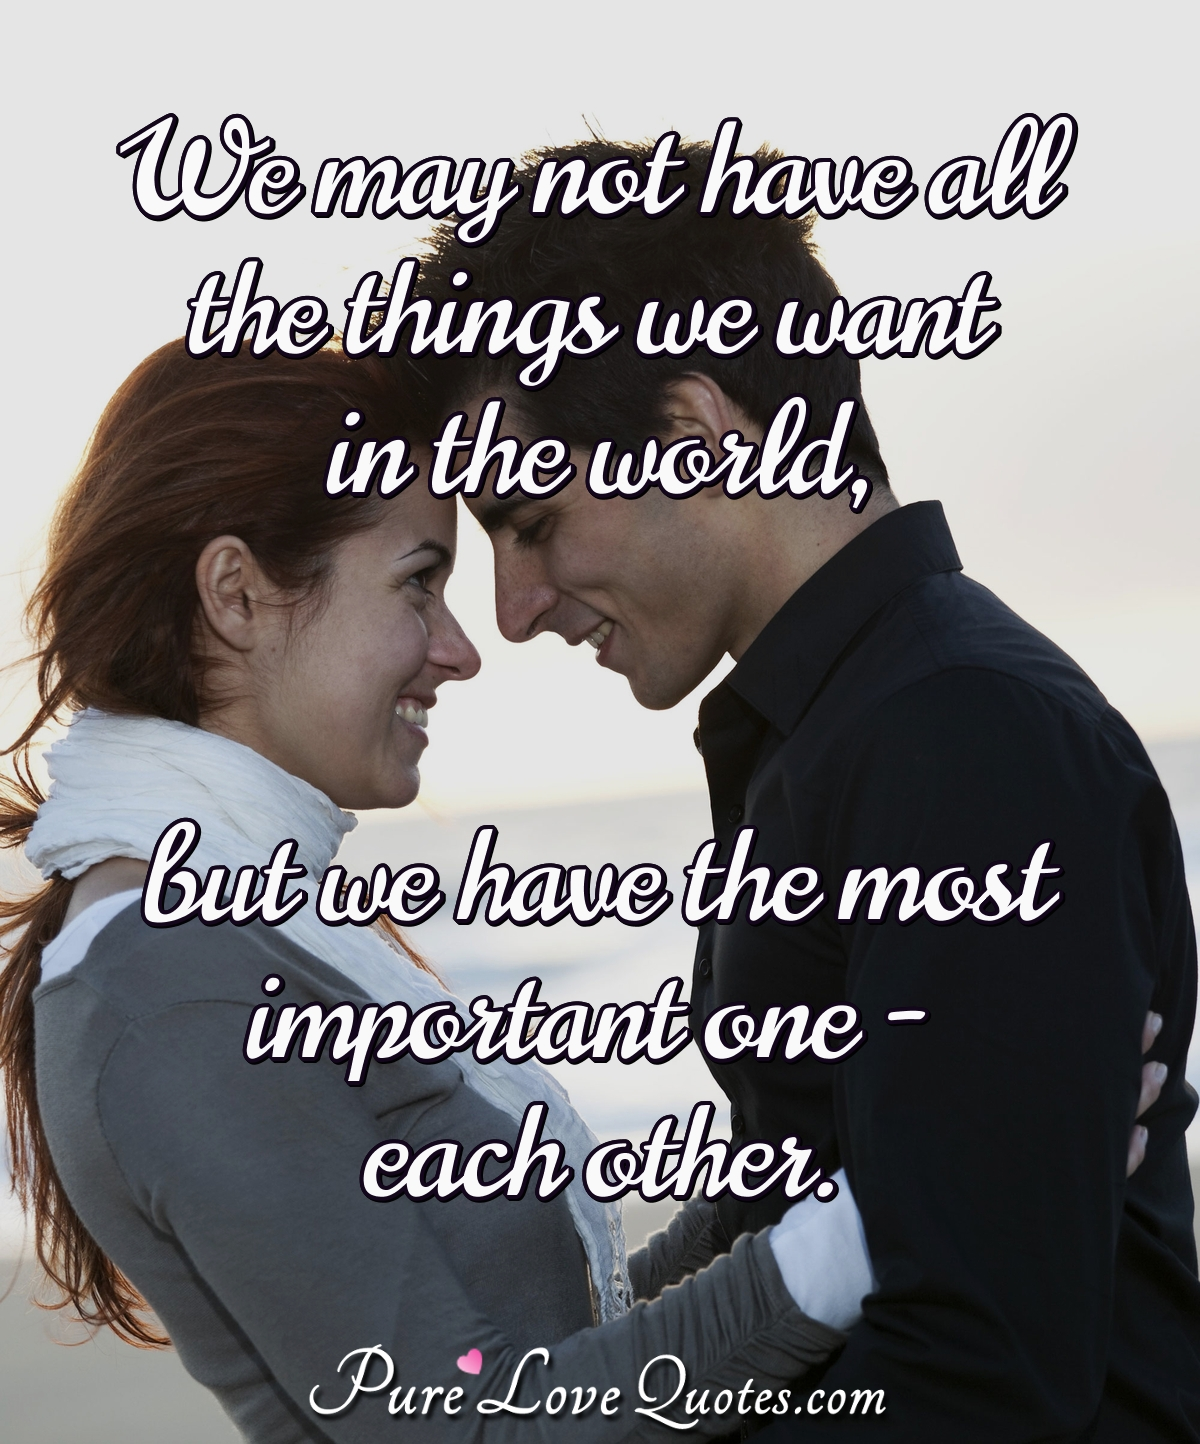 We may not have all the things we want in the world, but we have the most important one - each other. - PureLoveQuotes.com